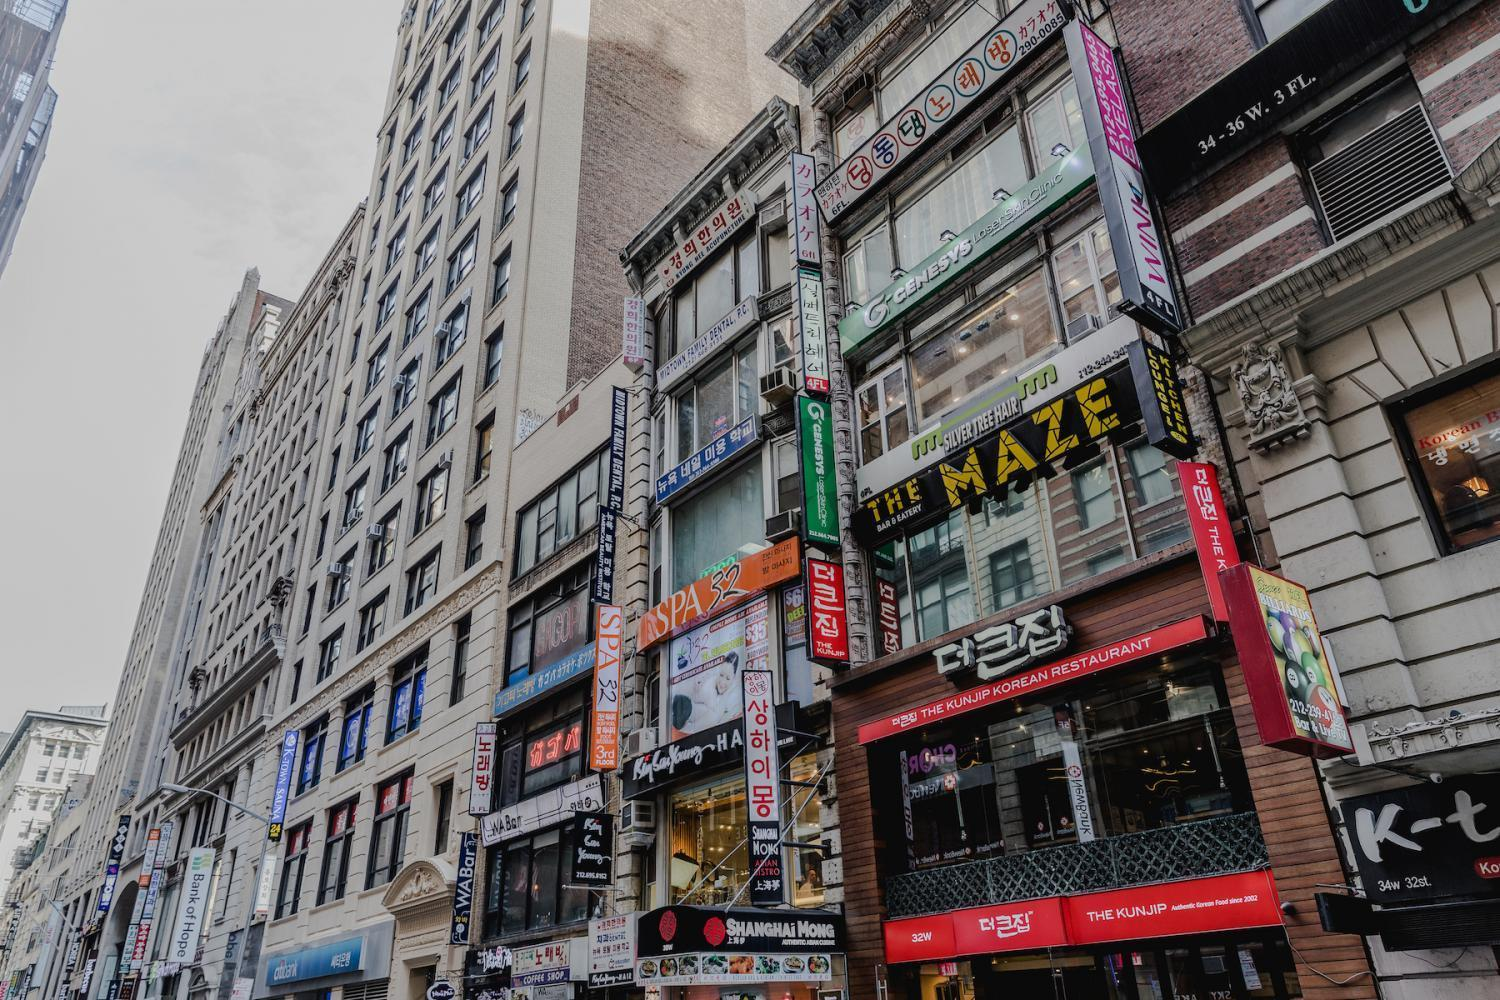 Located in Midtown, Koreatown is only one street on W 32nd St. between 5th and 6th Ave. called Korea Way. You can find anything ranging from half-and-half fried chicken to korean beauty products.